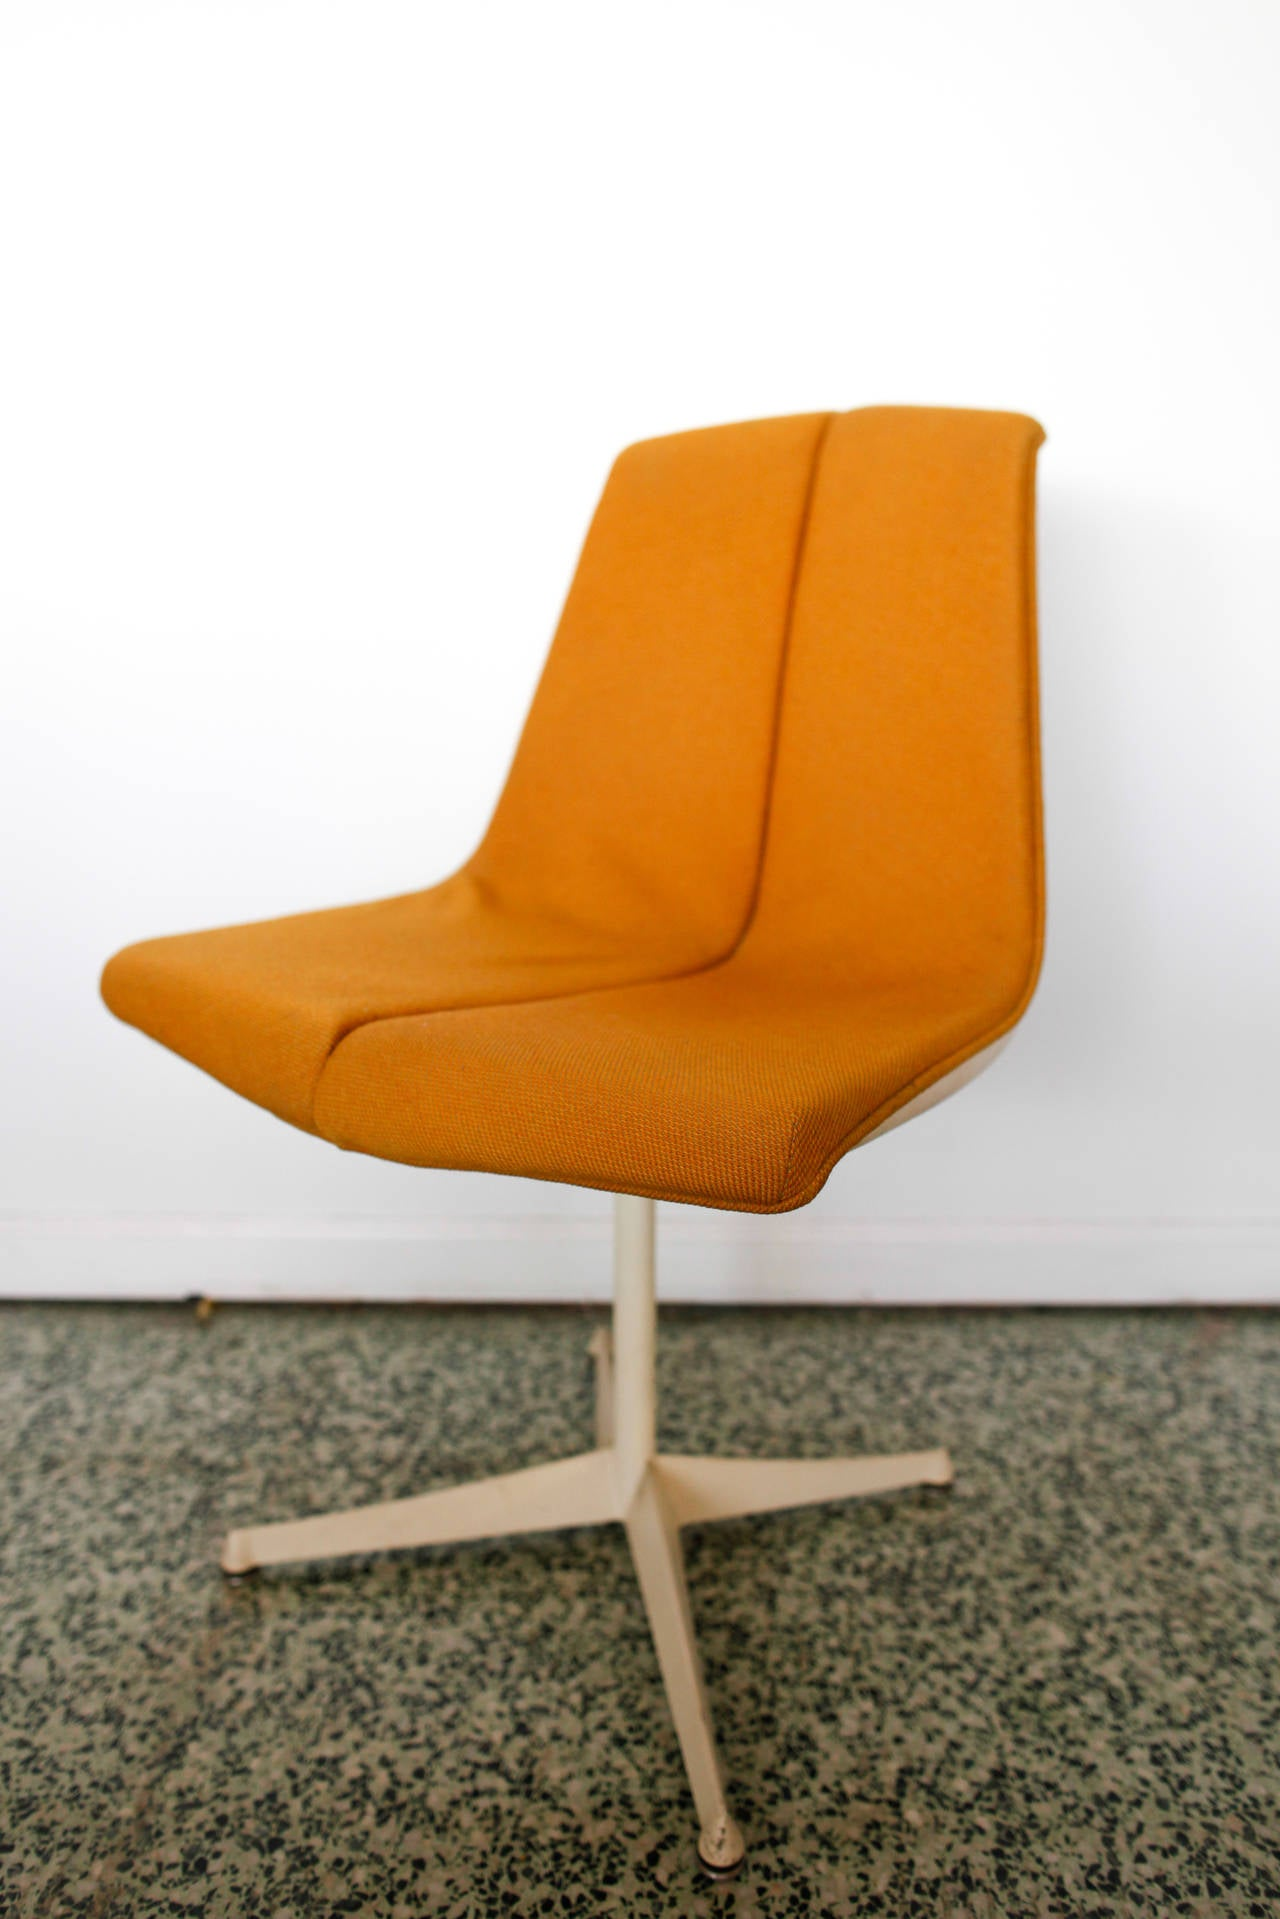 Mid-20th Century Pair of Richard Schultz Side Chairs for Knoll For Sale